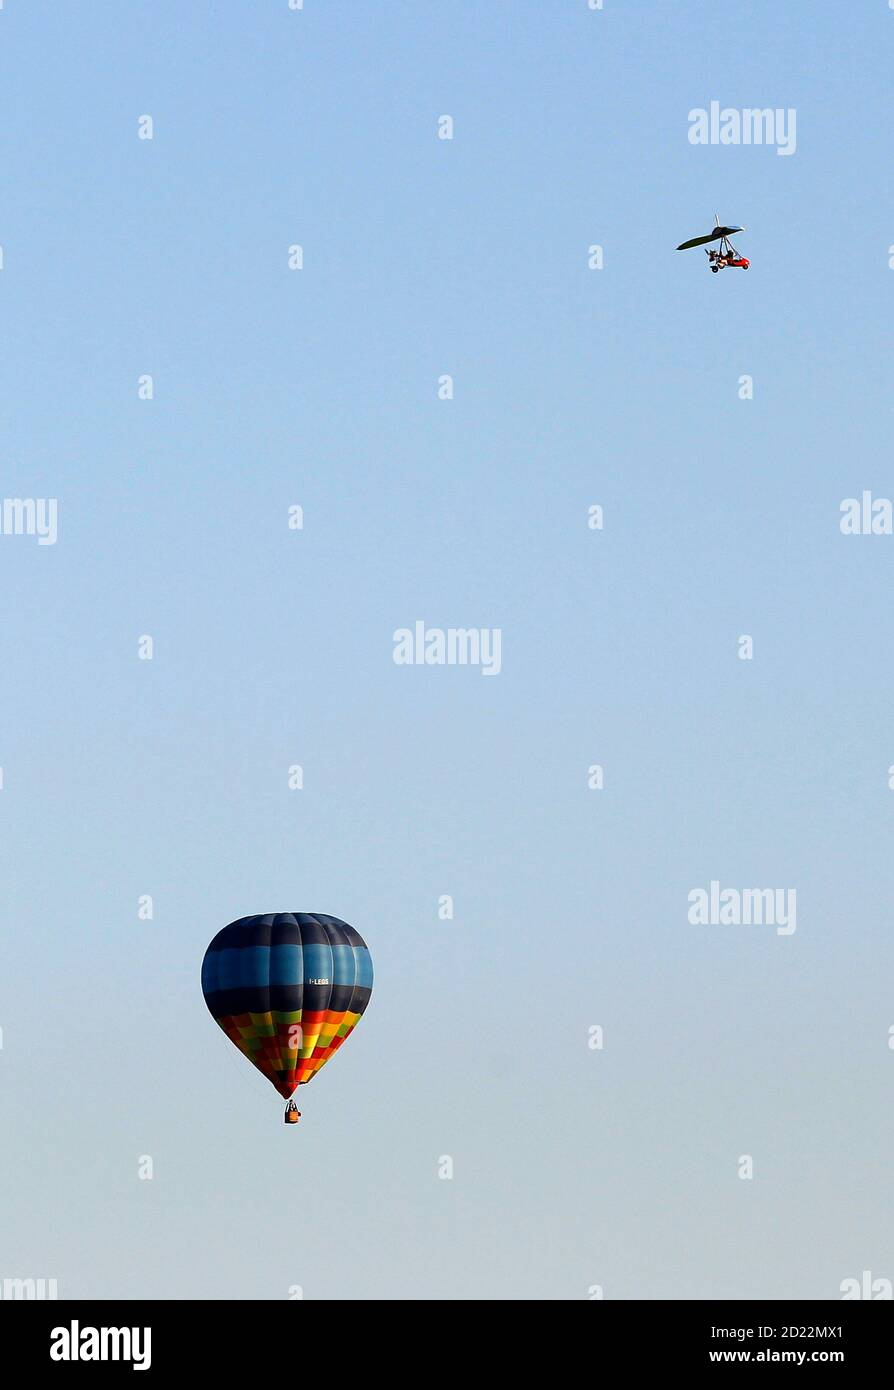 An ultralight aircraft flies near a hot air balloon over Alessandria May 22, 2010.   REUTERS/Alessandro Bianchi   (ITALY - Tags: SOCIETY TRANSPORT) Banque D'Images